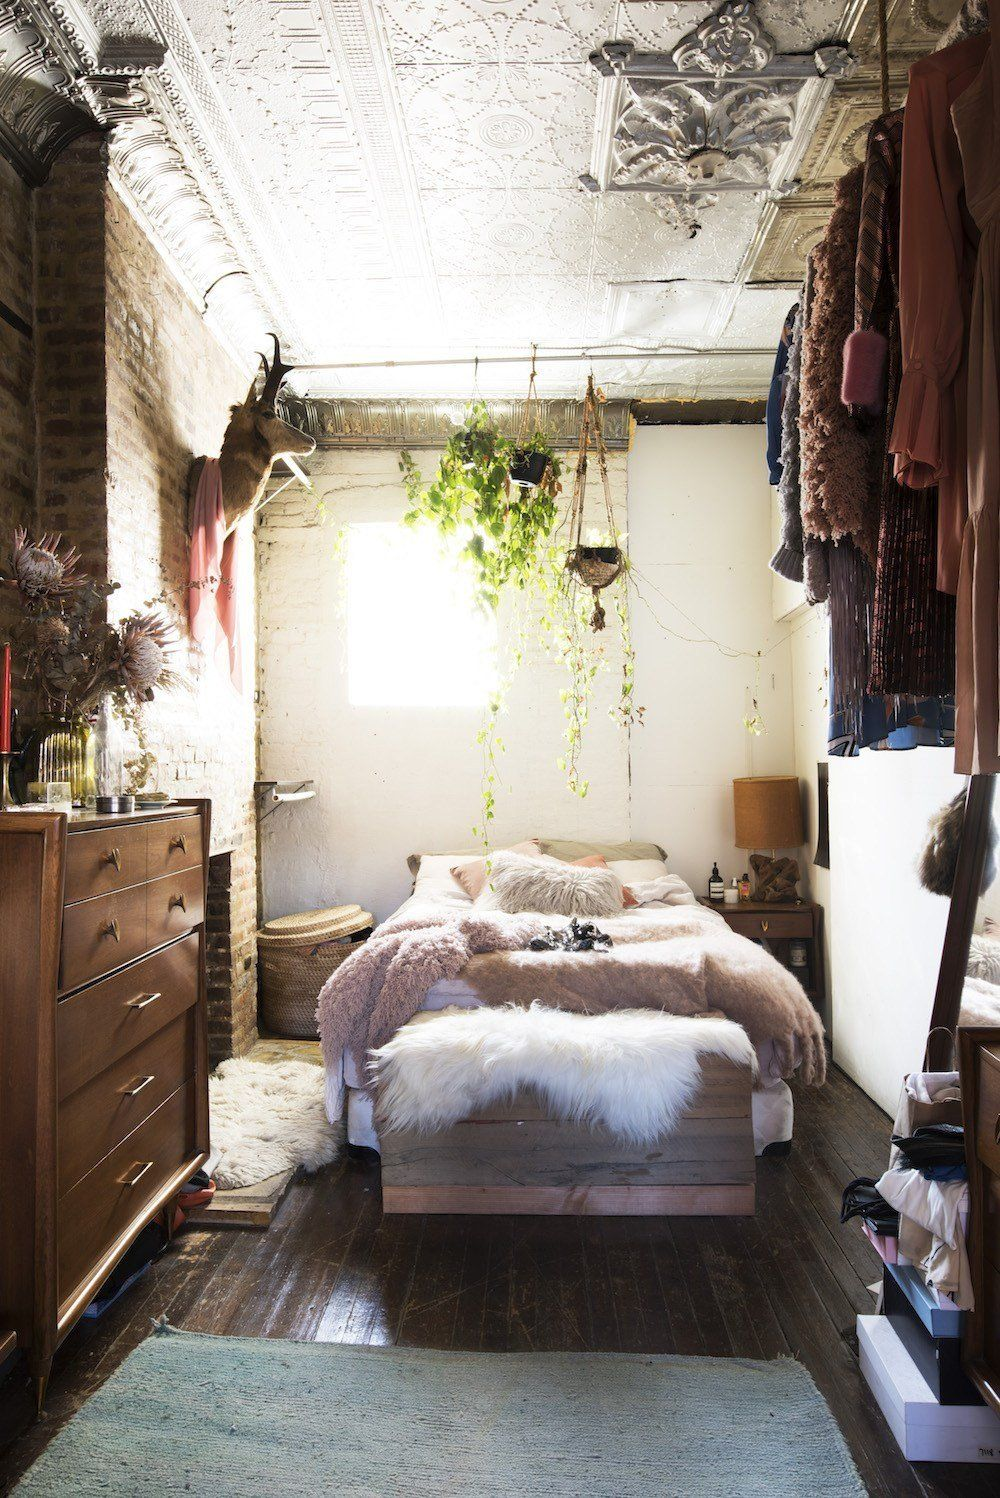 Bachelor Bedrooms Ideas On A Budget 34 Apartment Bedroom ... on Bohemian Bedroom Ideas On A Budget  id=90743